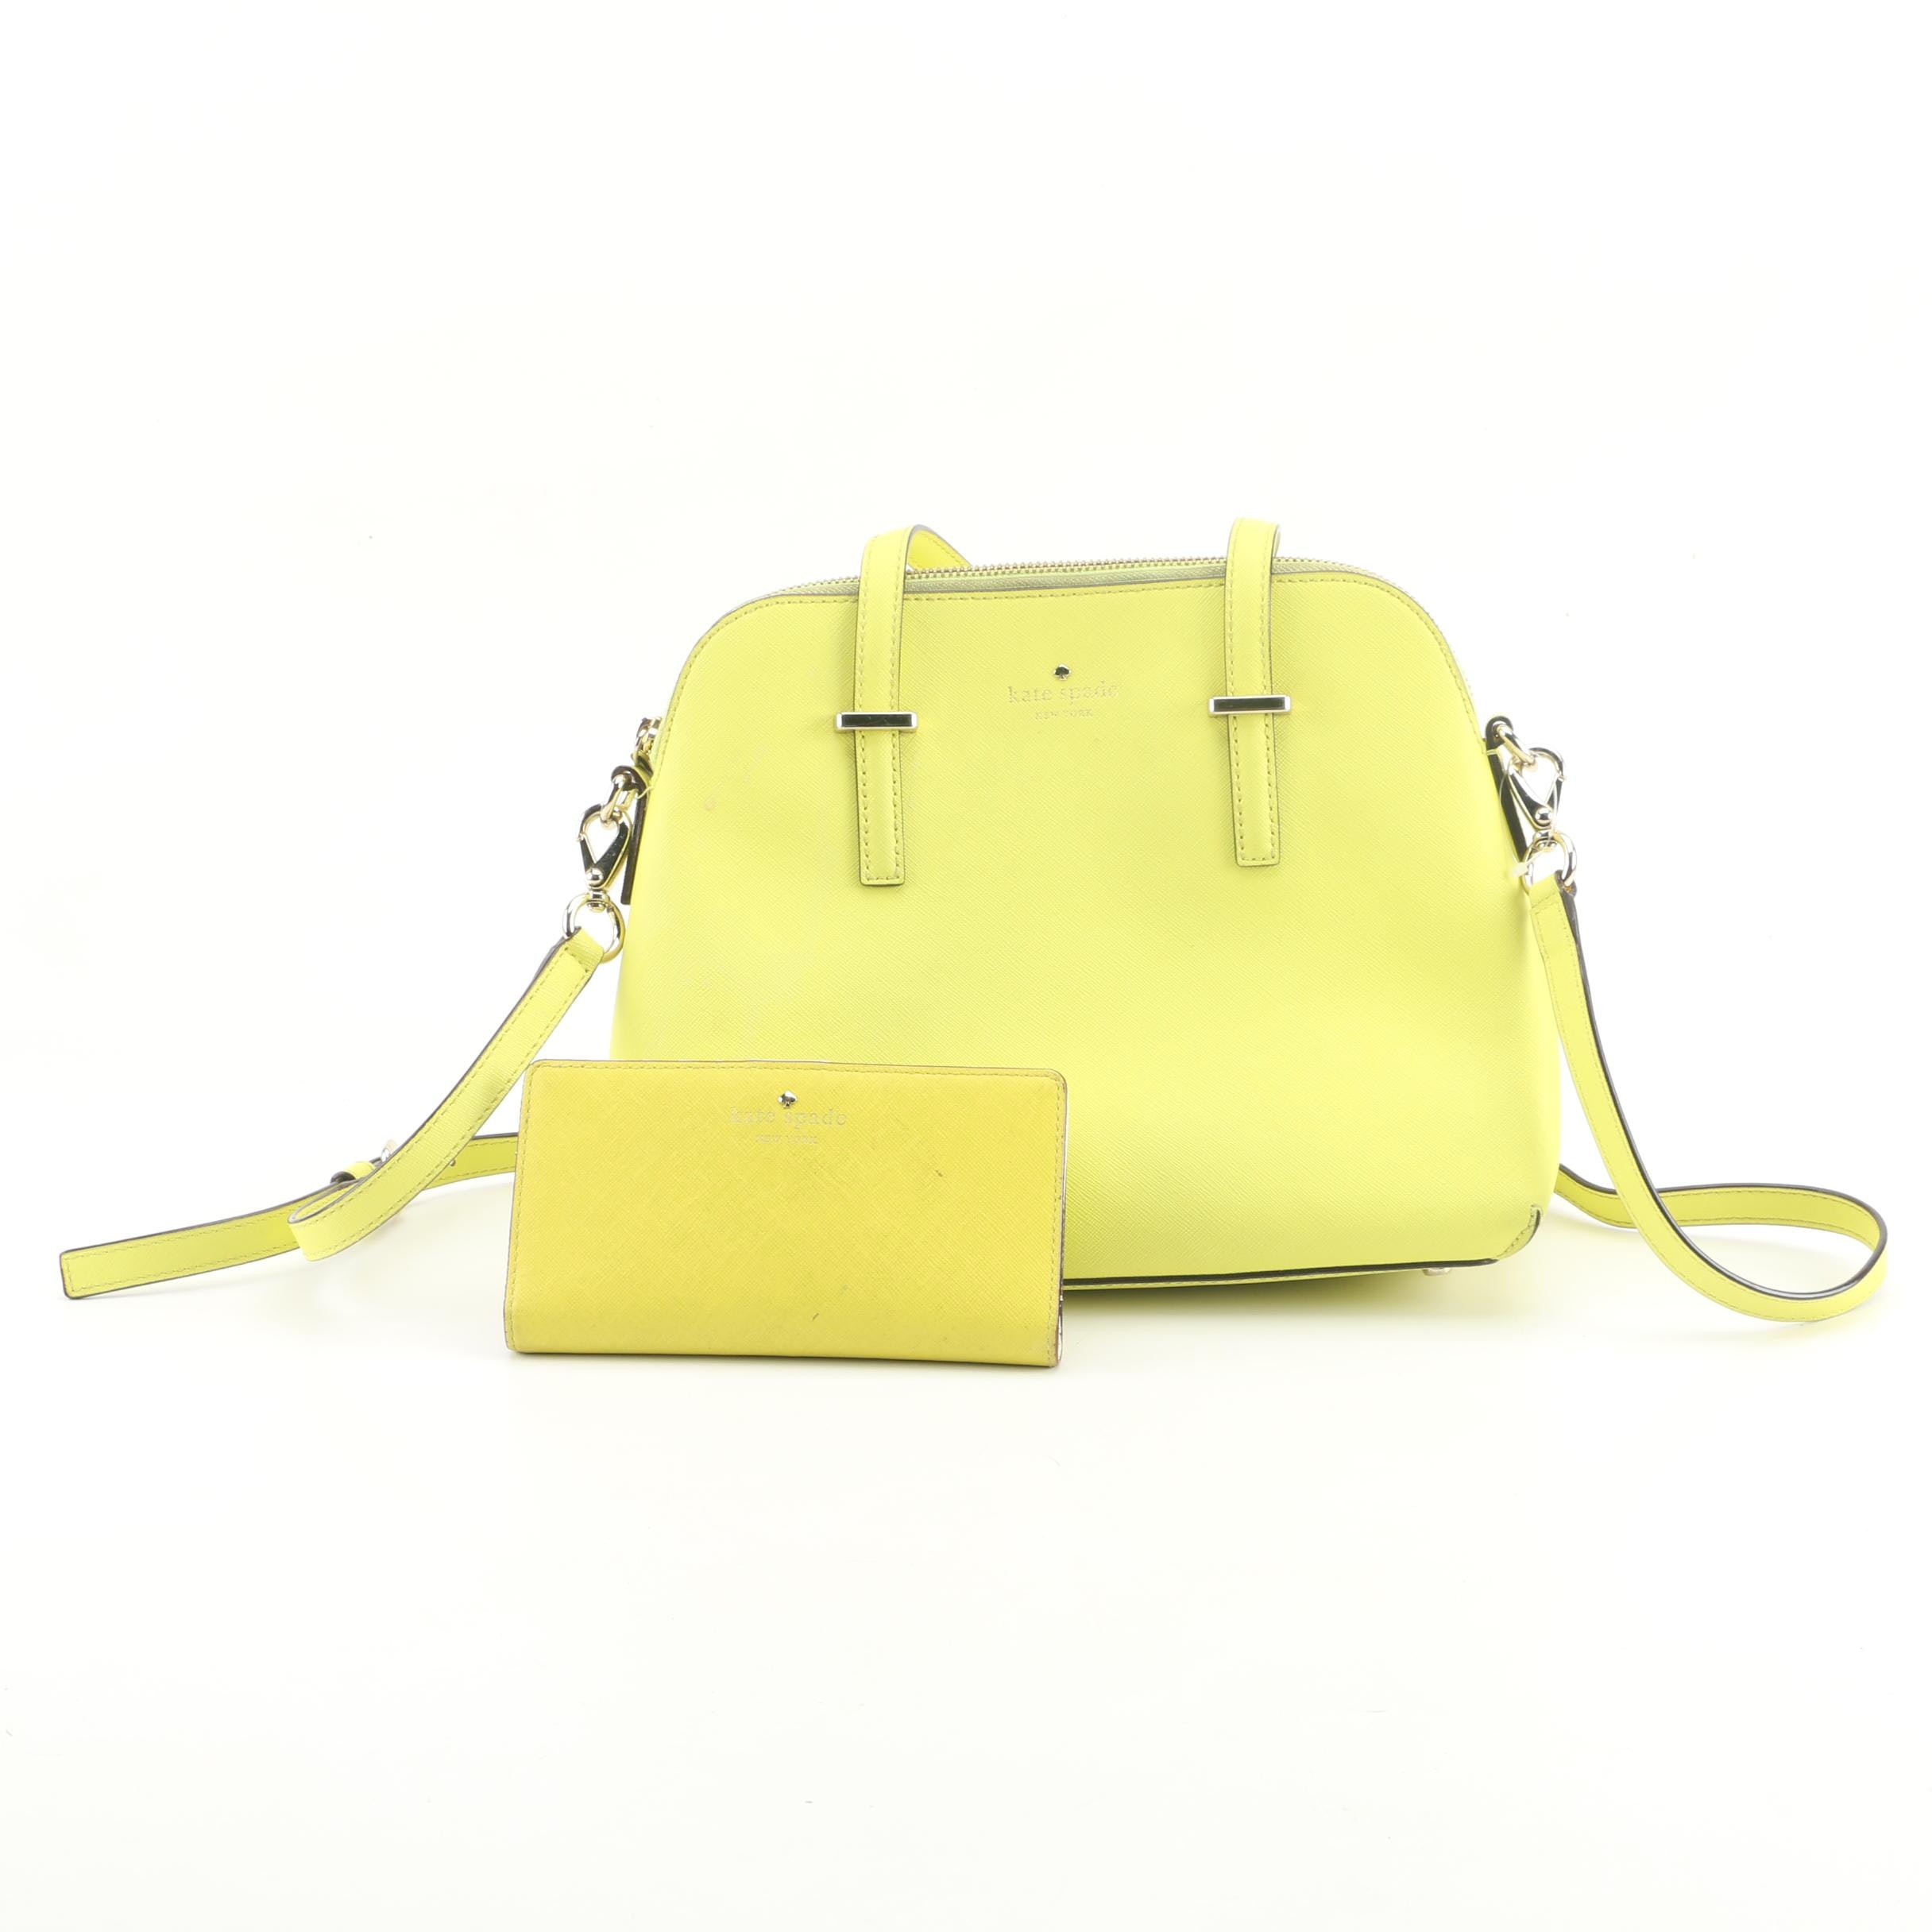 Kate Spade New York Cedar Street Maise Yellow Leather Satchel and Wallet